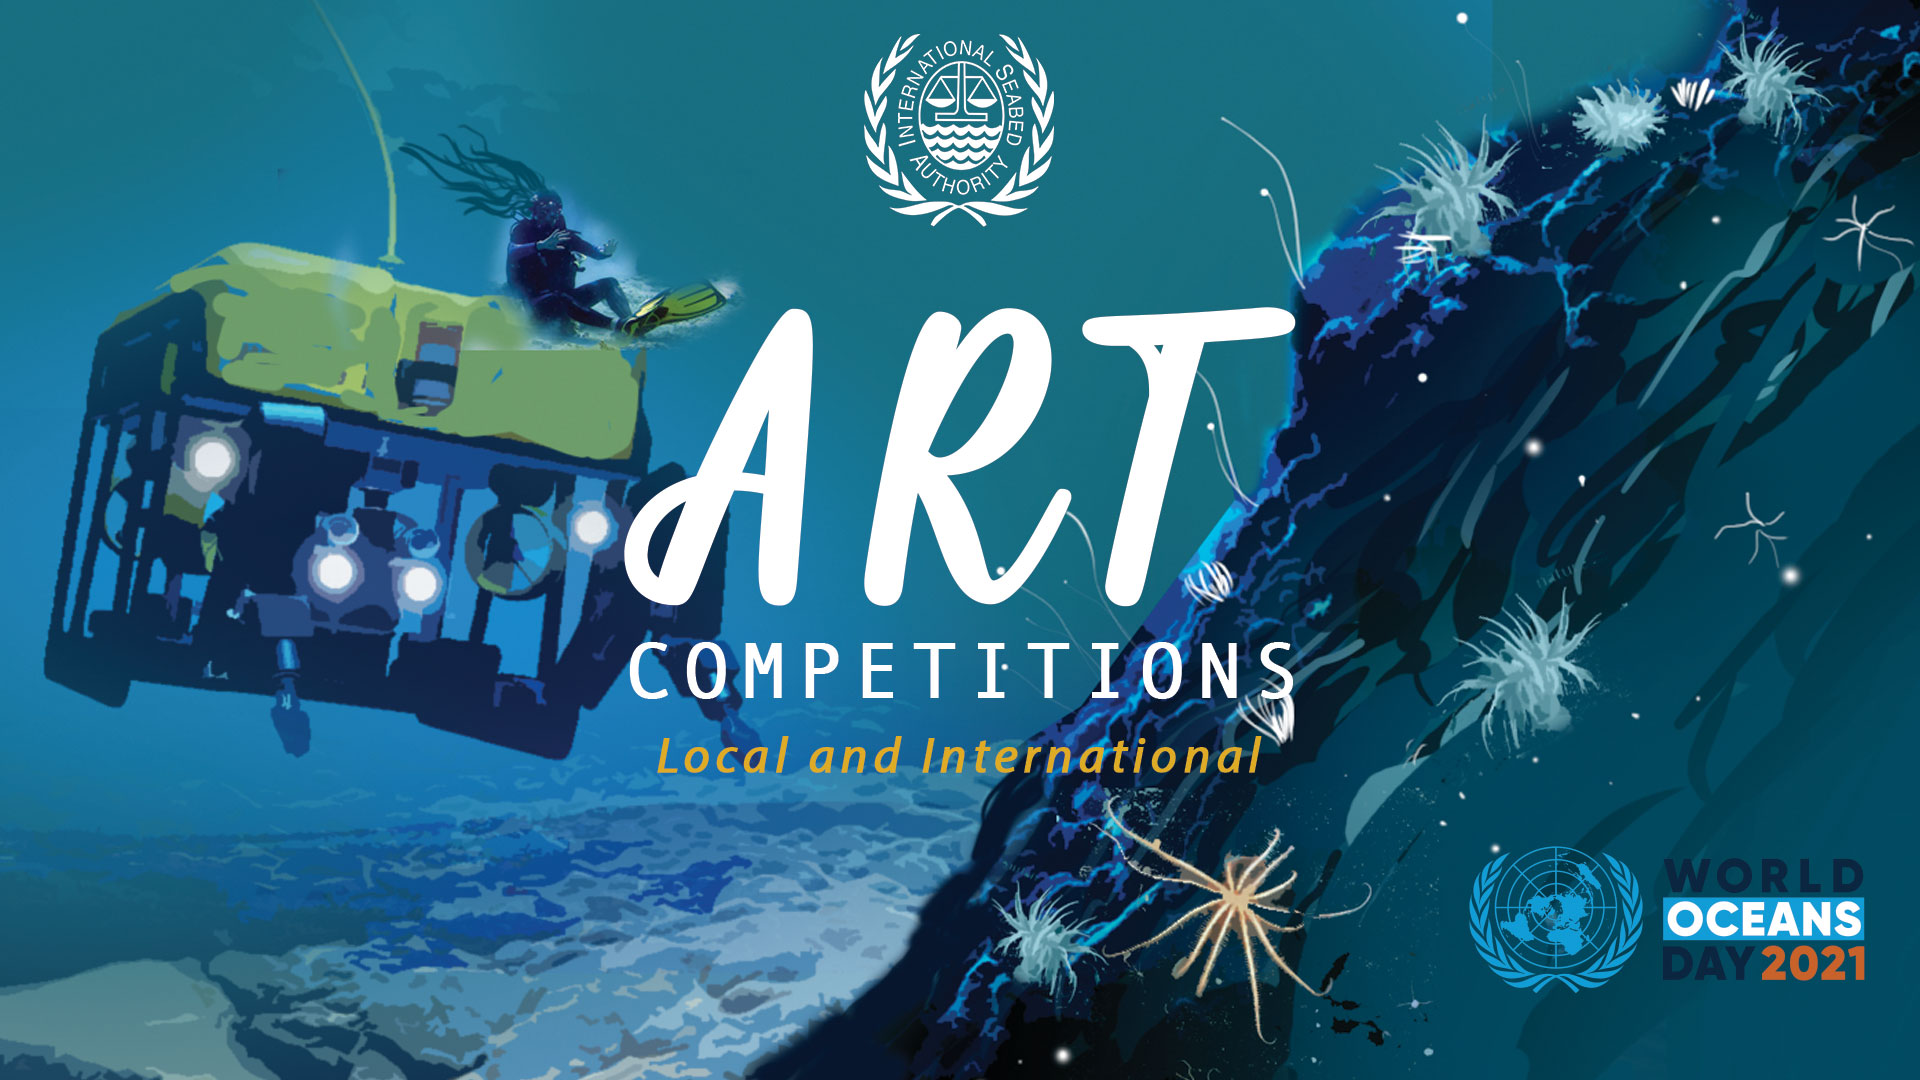 ISA-2021-WOD-art-competitions